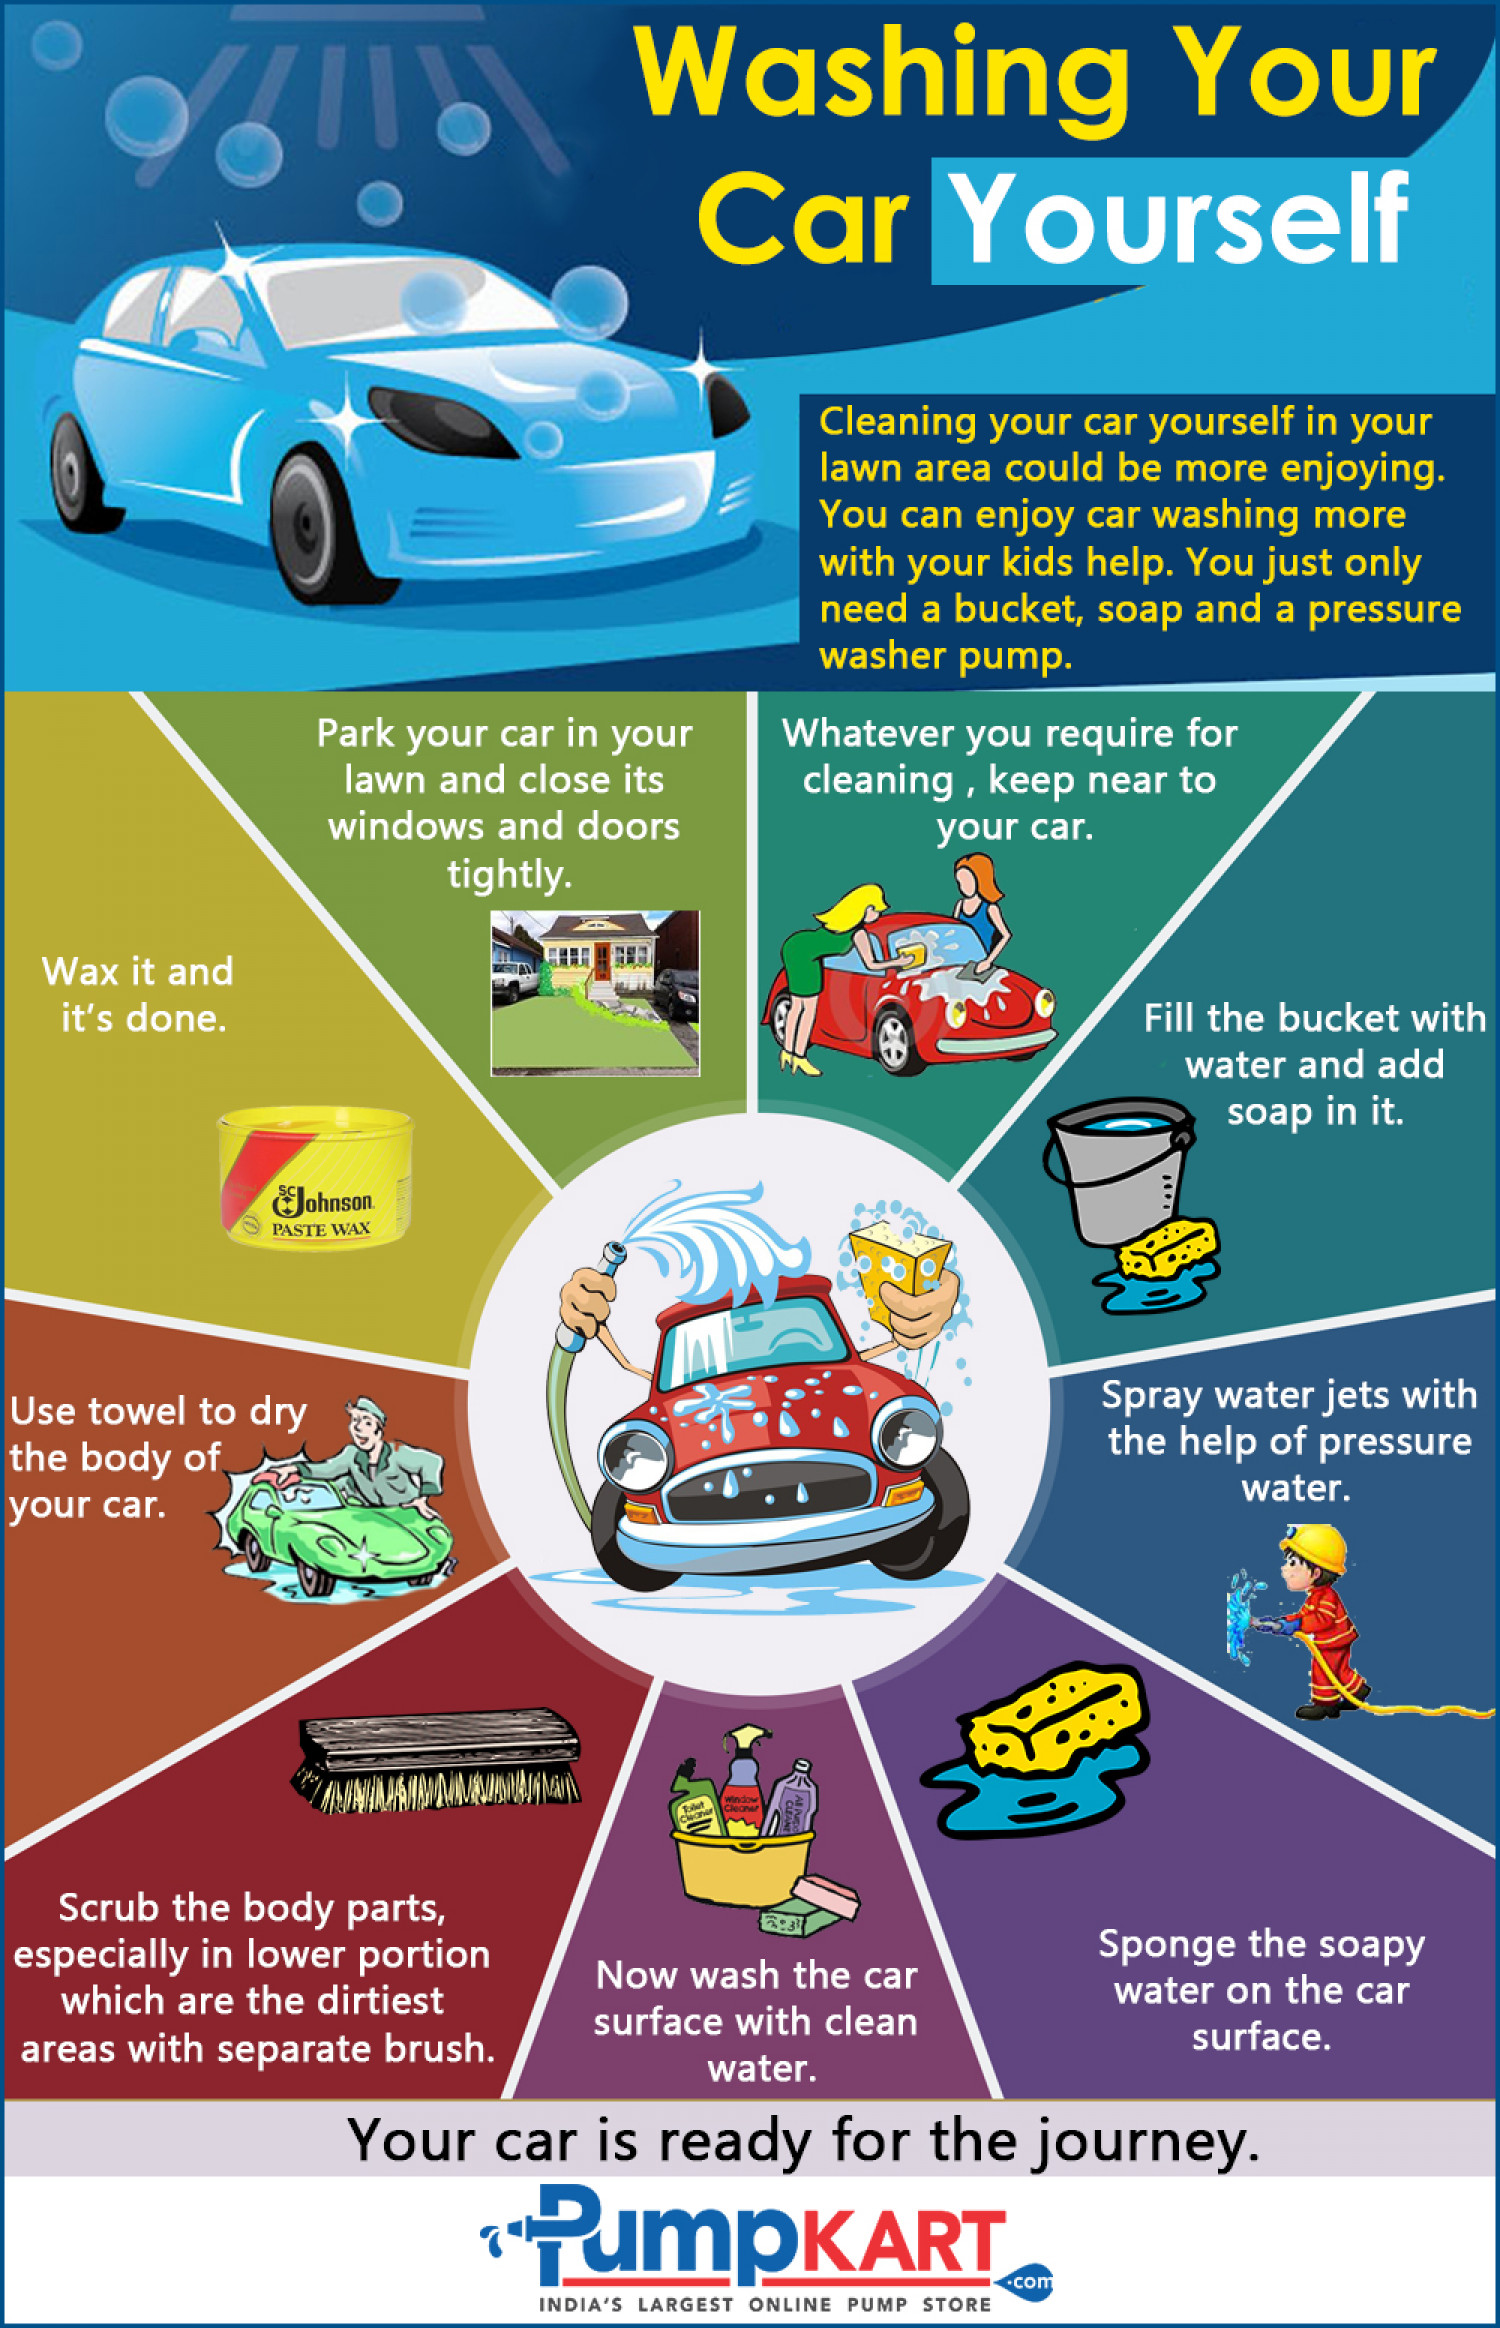 Washing Your Car Yourself Infographic